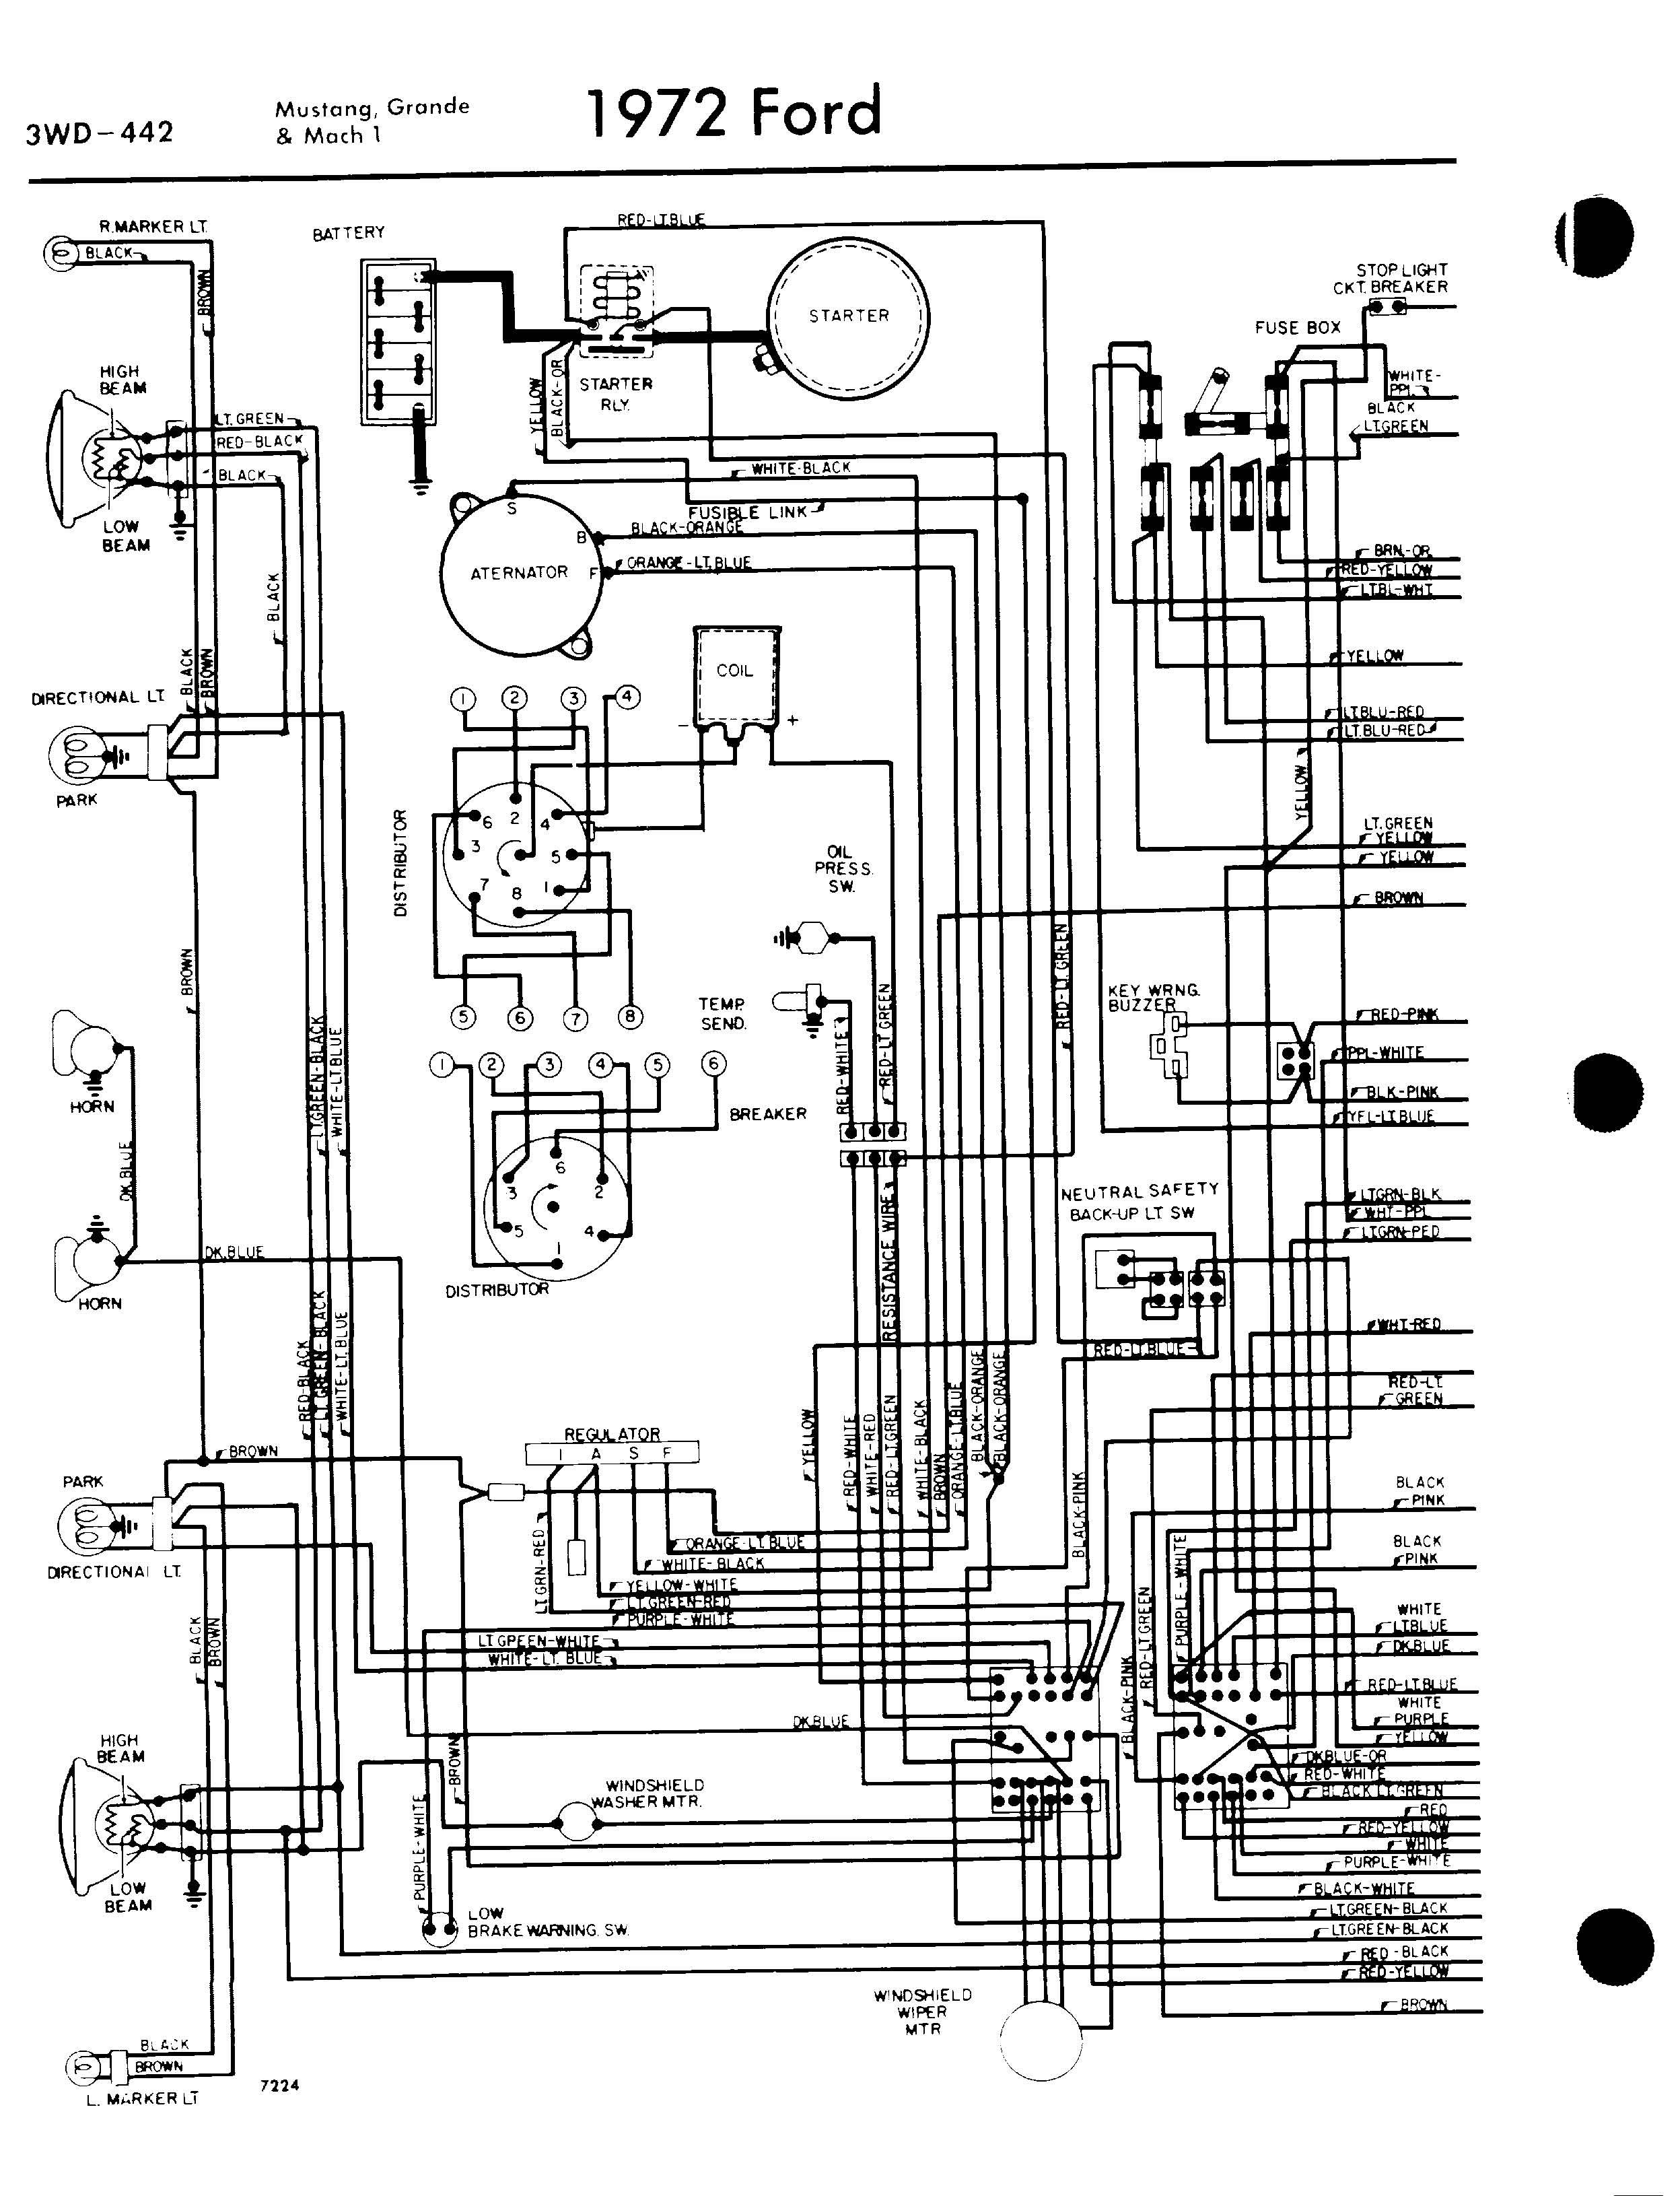 71af7a58e095e6a7716b32f1b23e8bd2 1973 chevy nova wiring diagram 1973 dodge dart wiring diagram  at soozxer.org